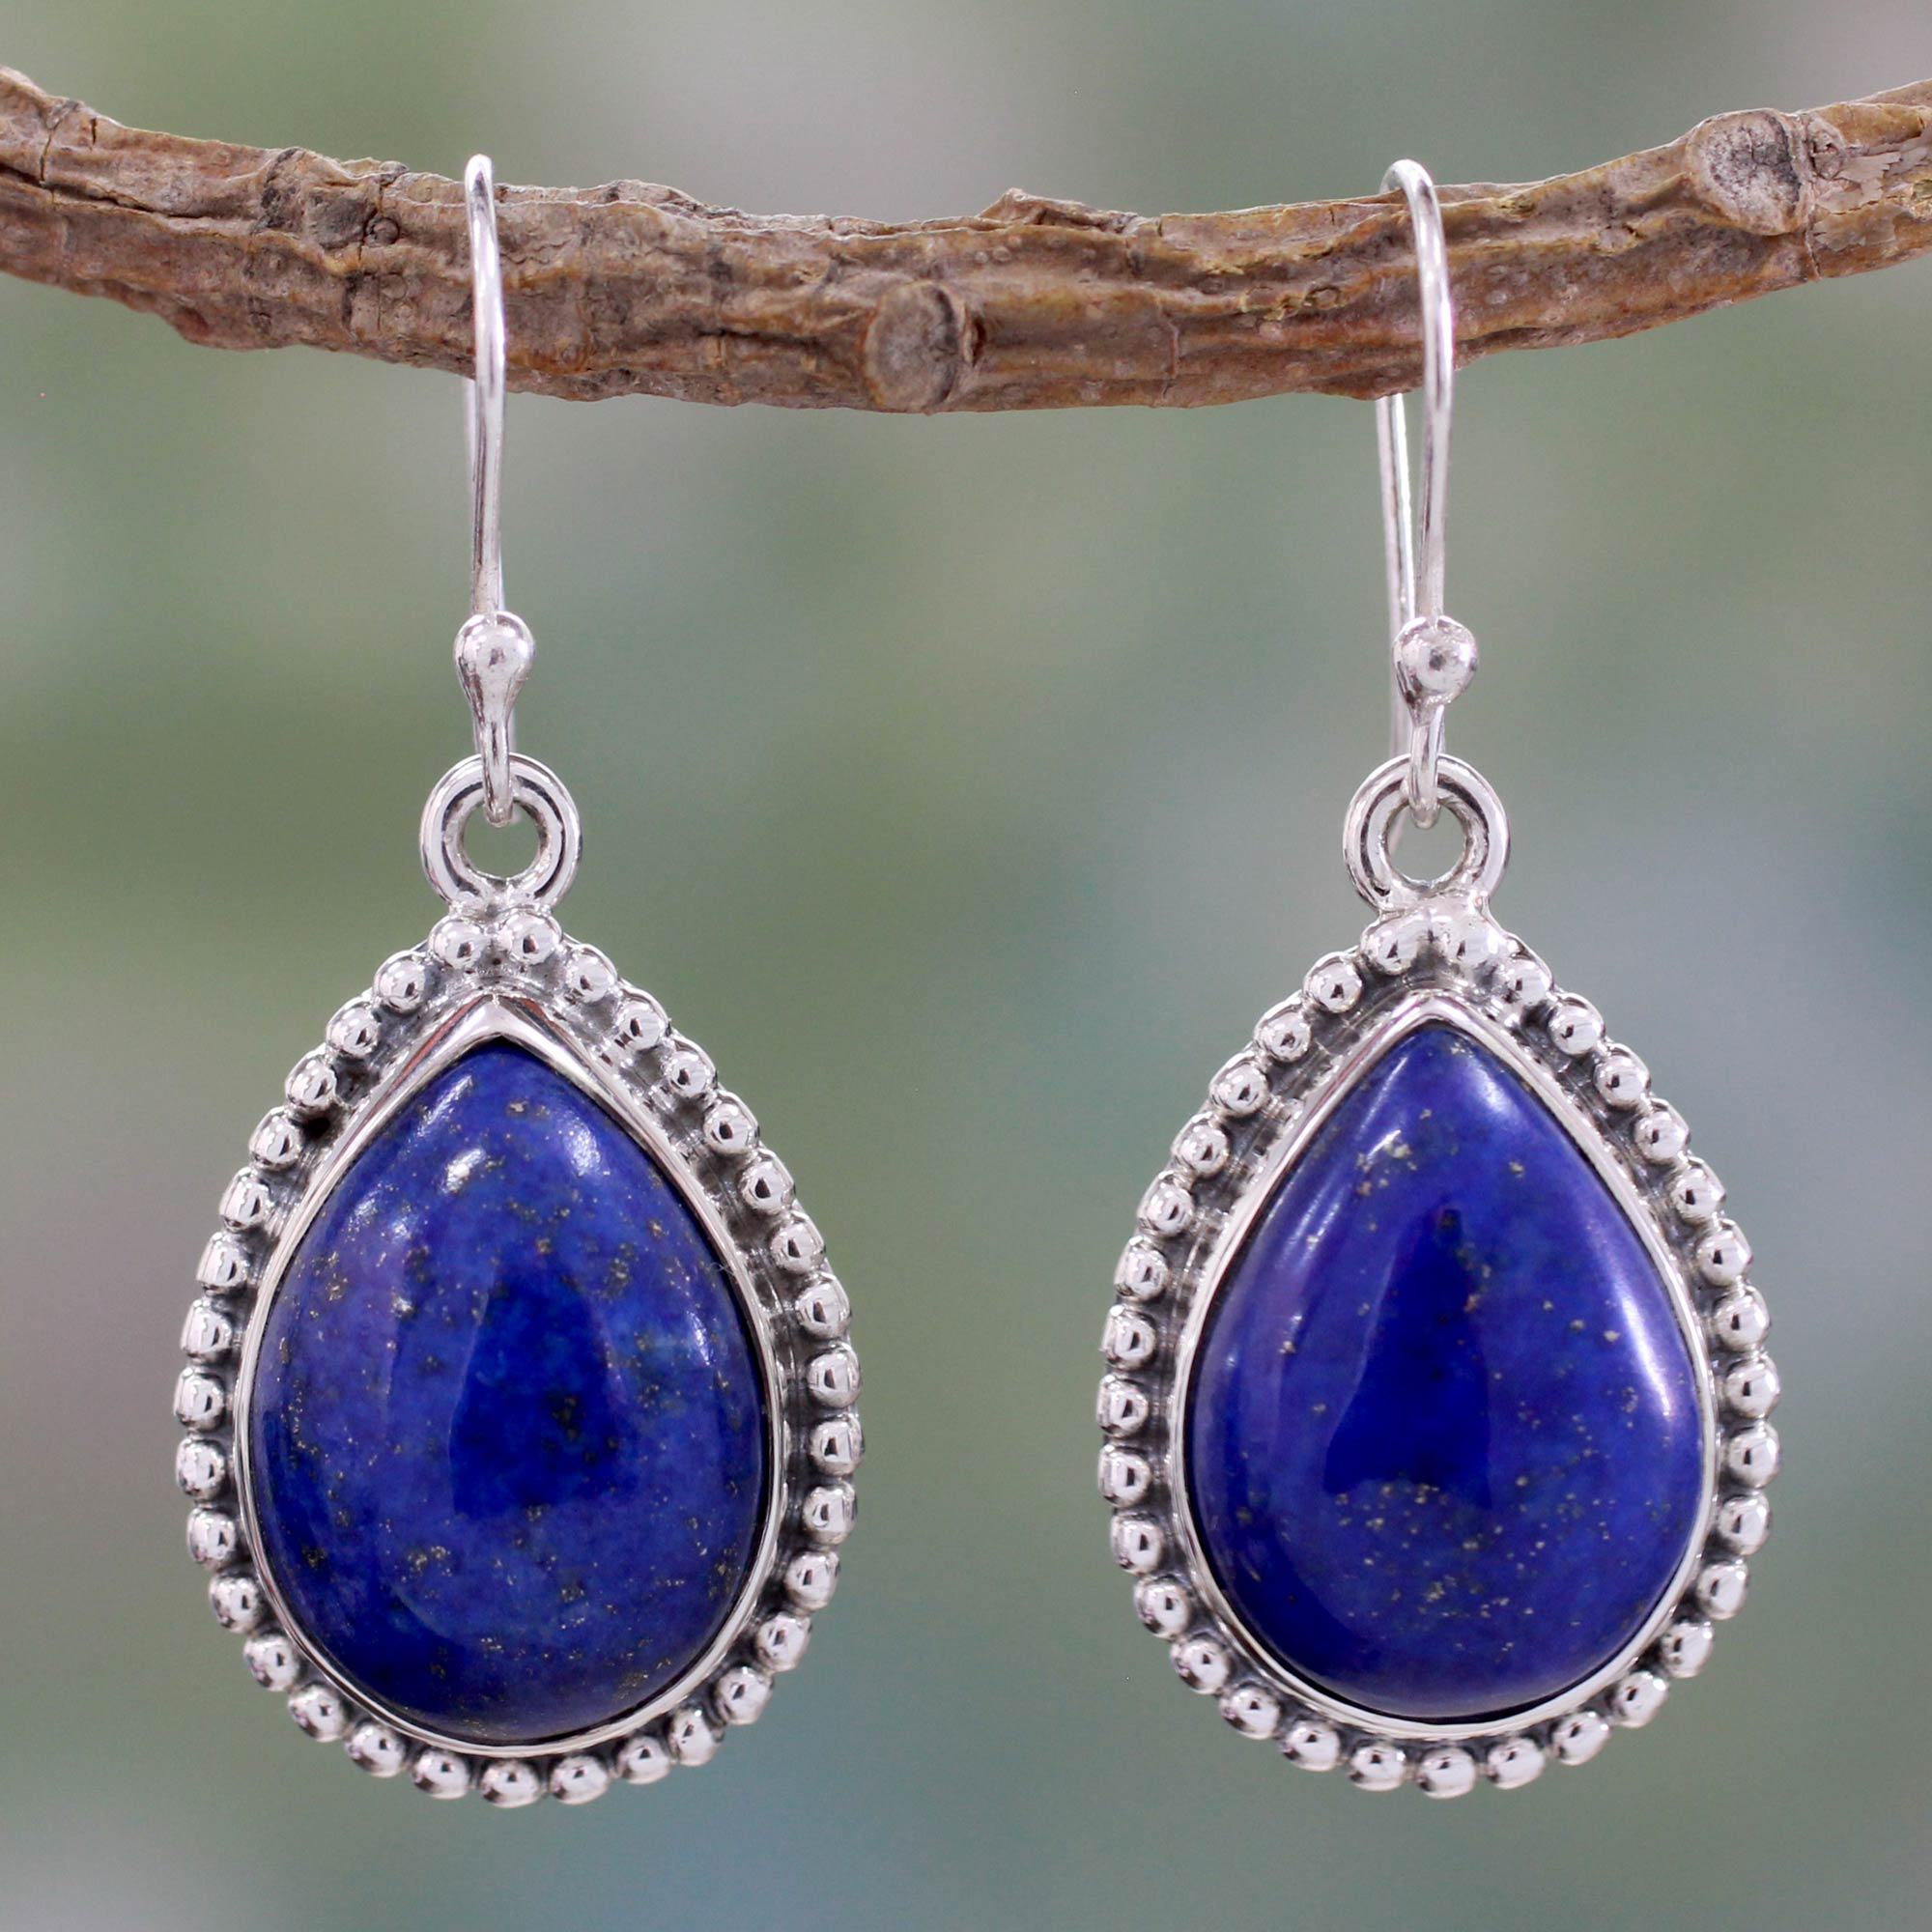 oval lucky jewelry earrings dangle sterling celtic enk lapis bling nk leverback silver